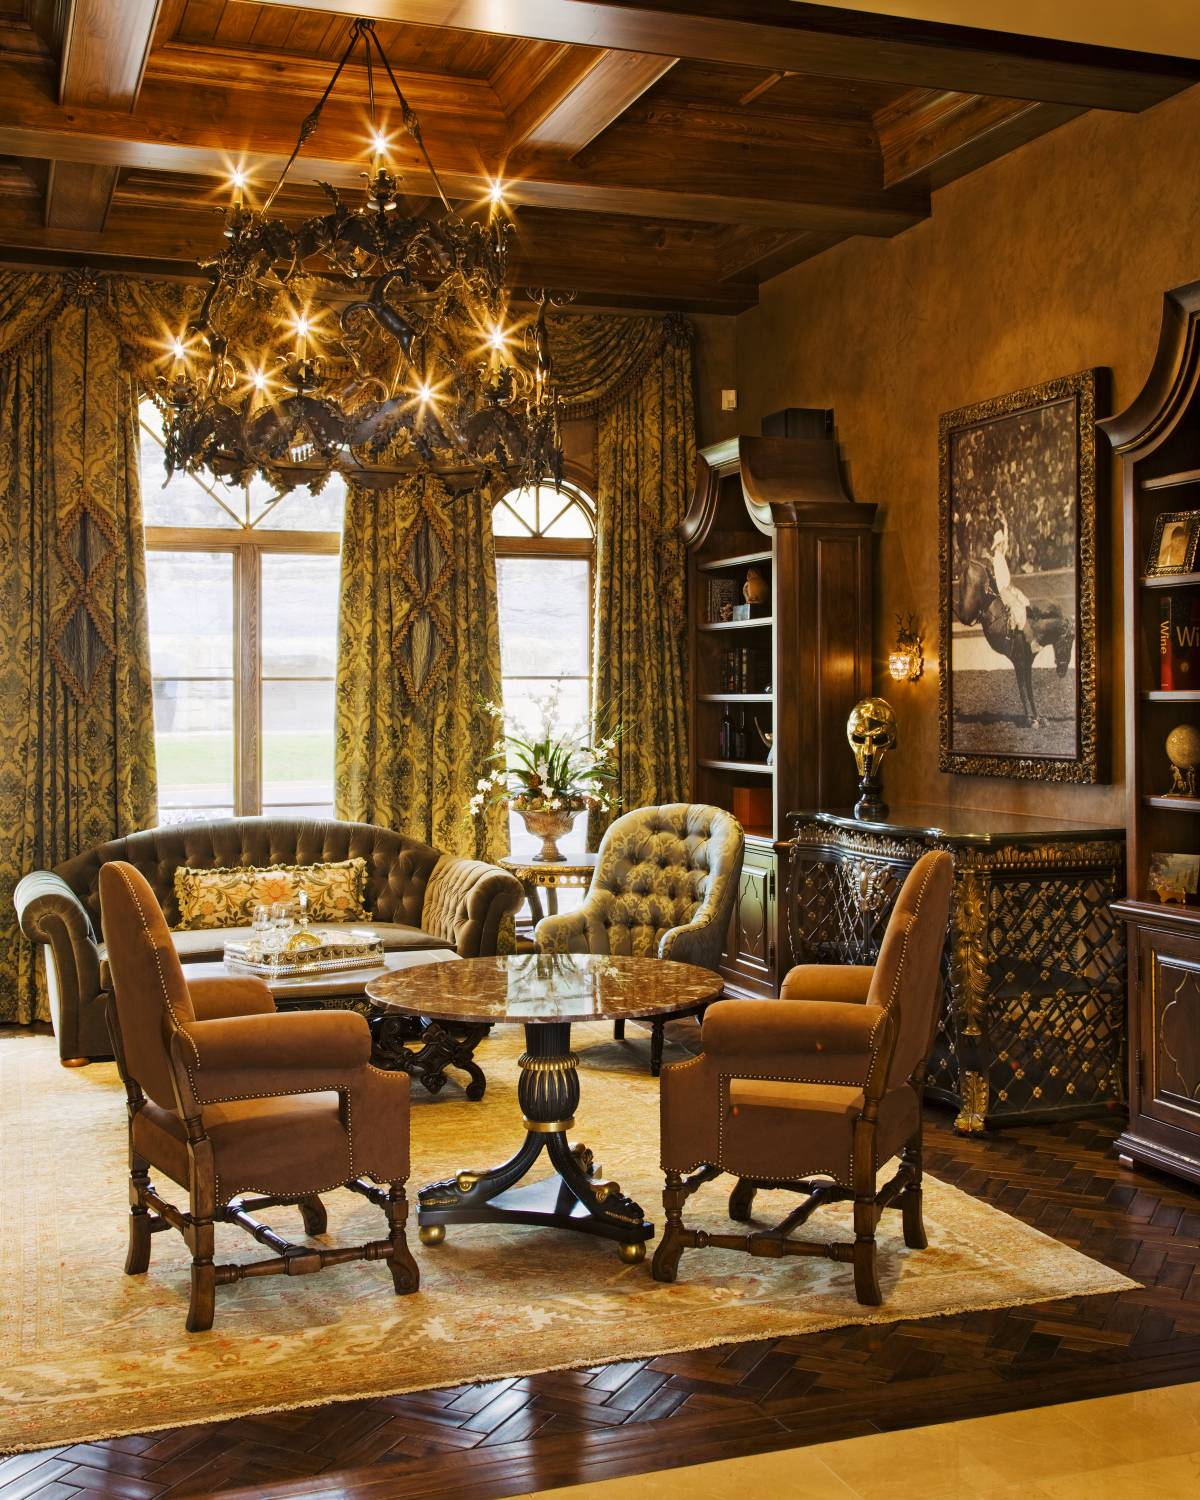 Architecture-Home-Lakeside-Estate-19-sitting space.jpg